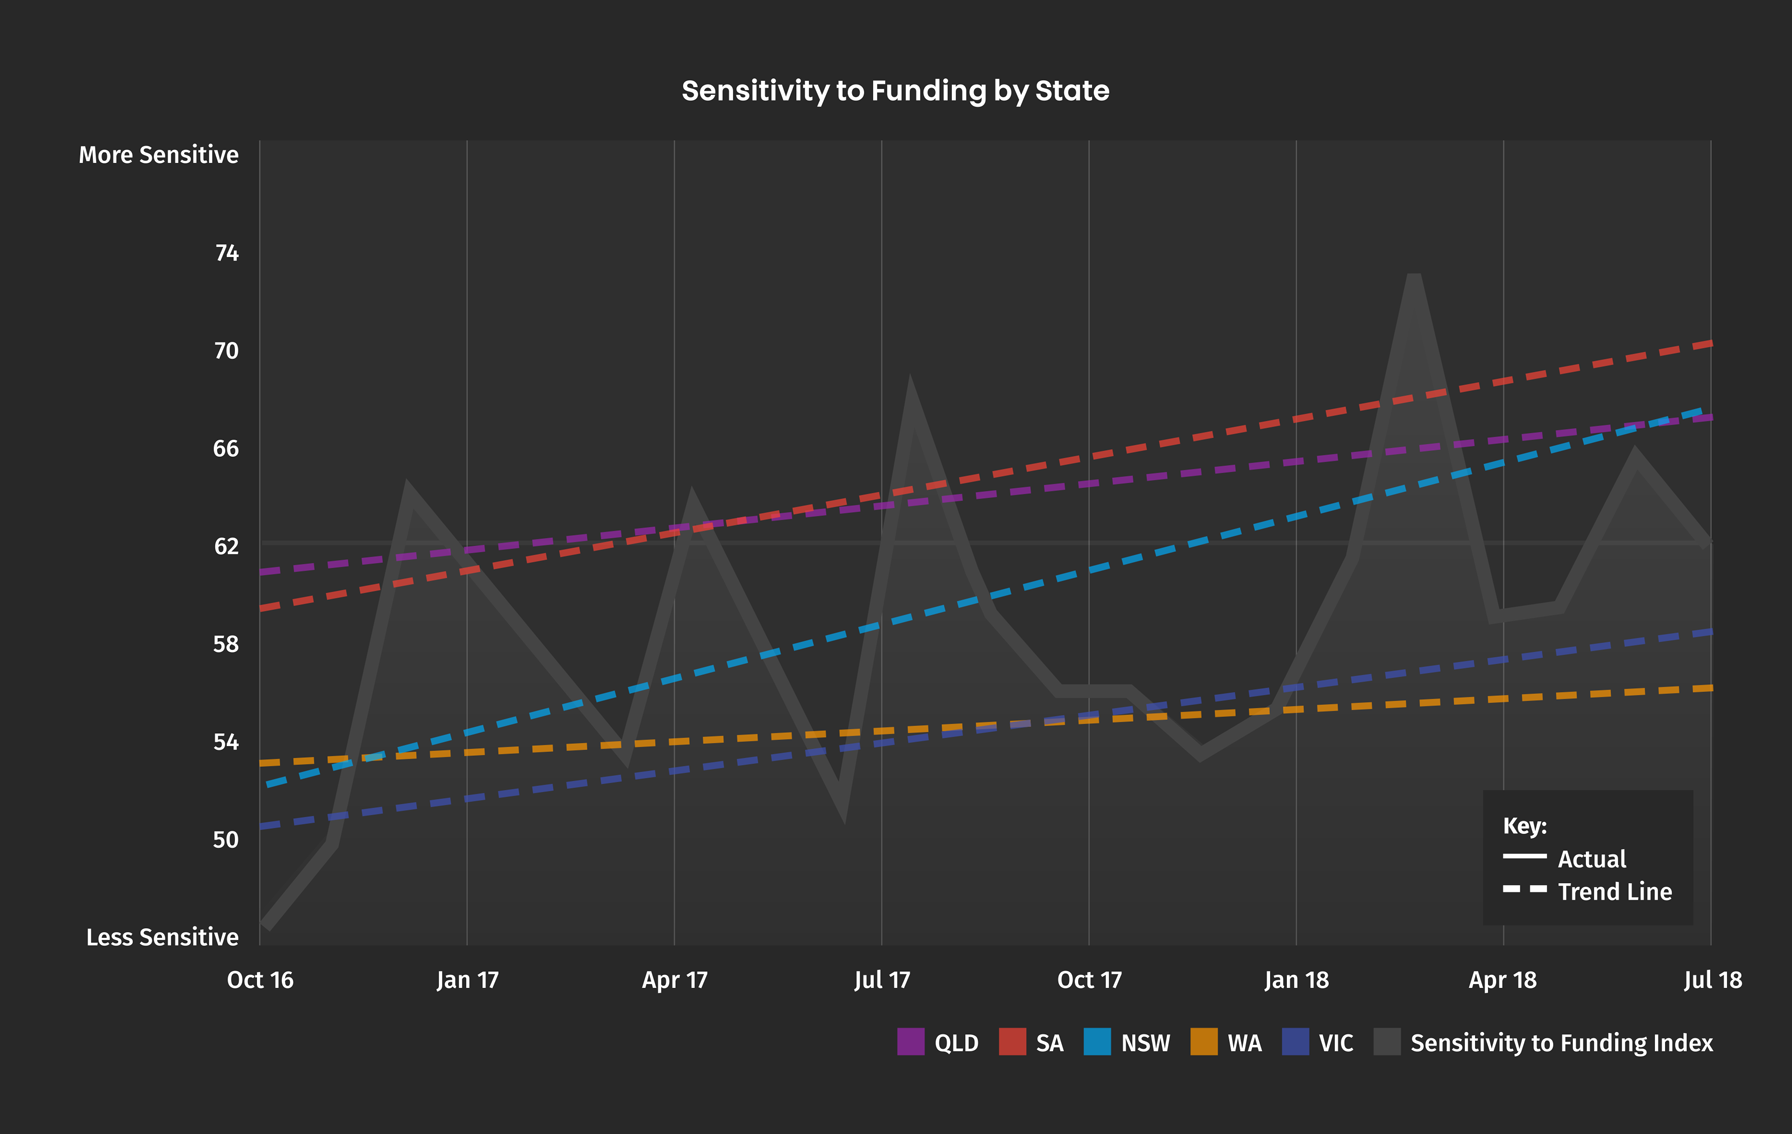 Sensitivity to Funding by State